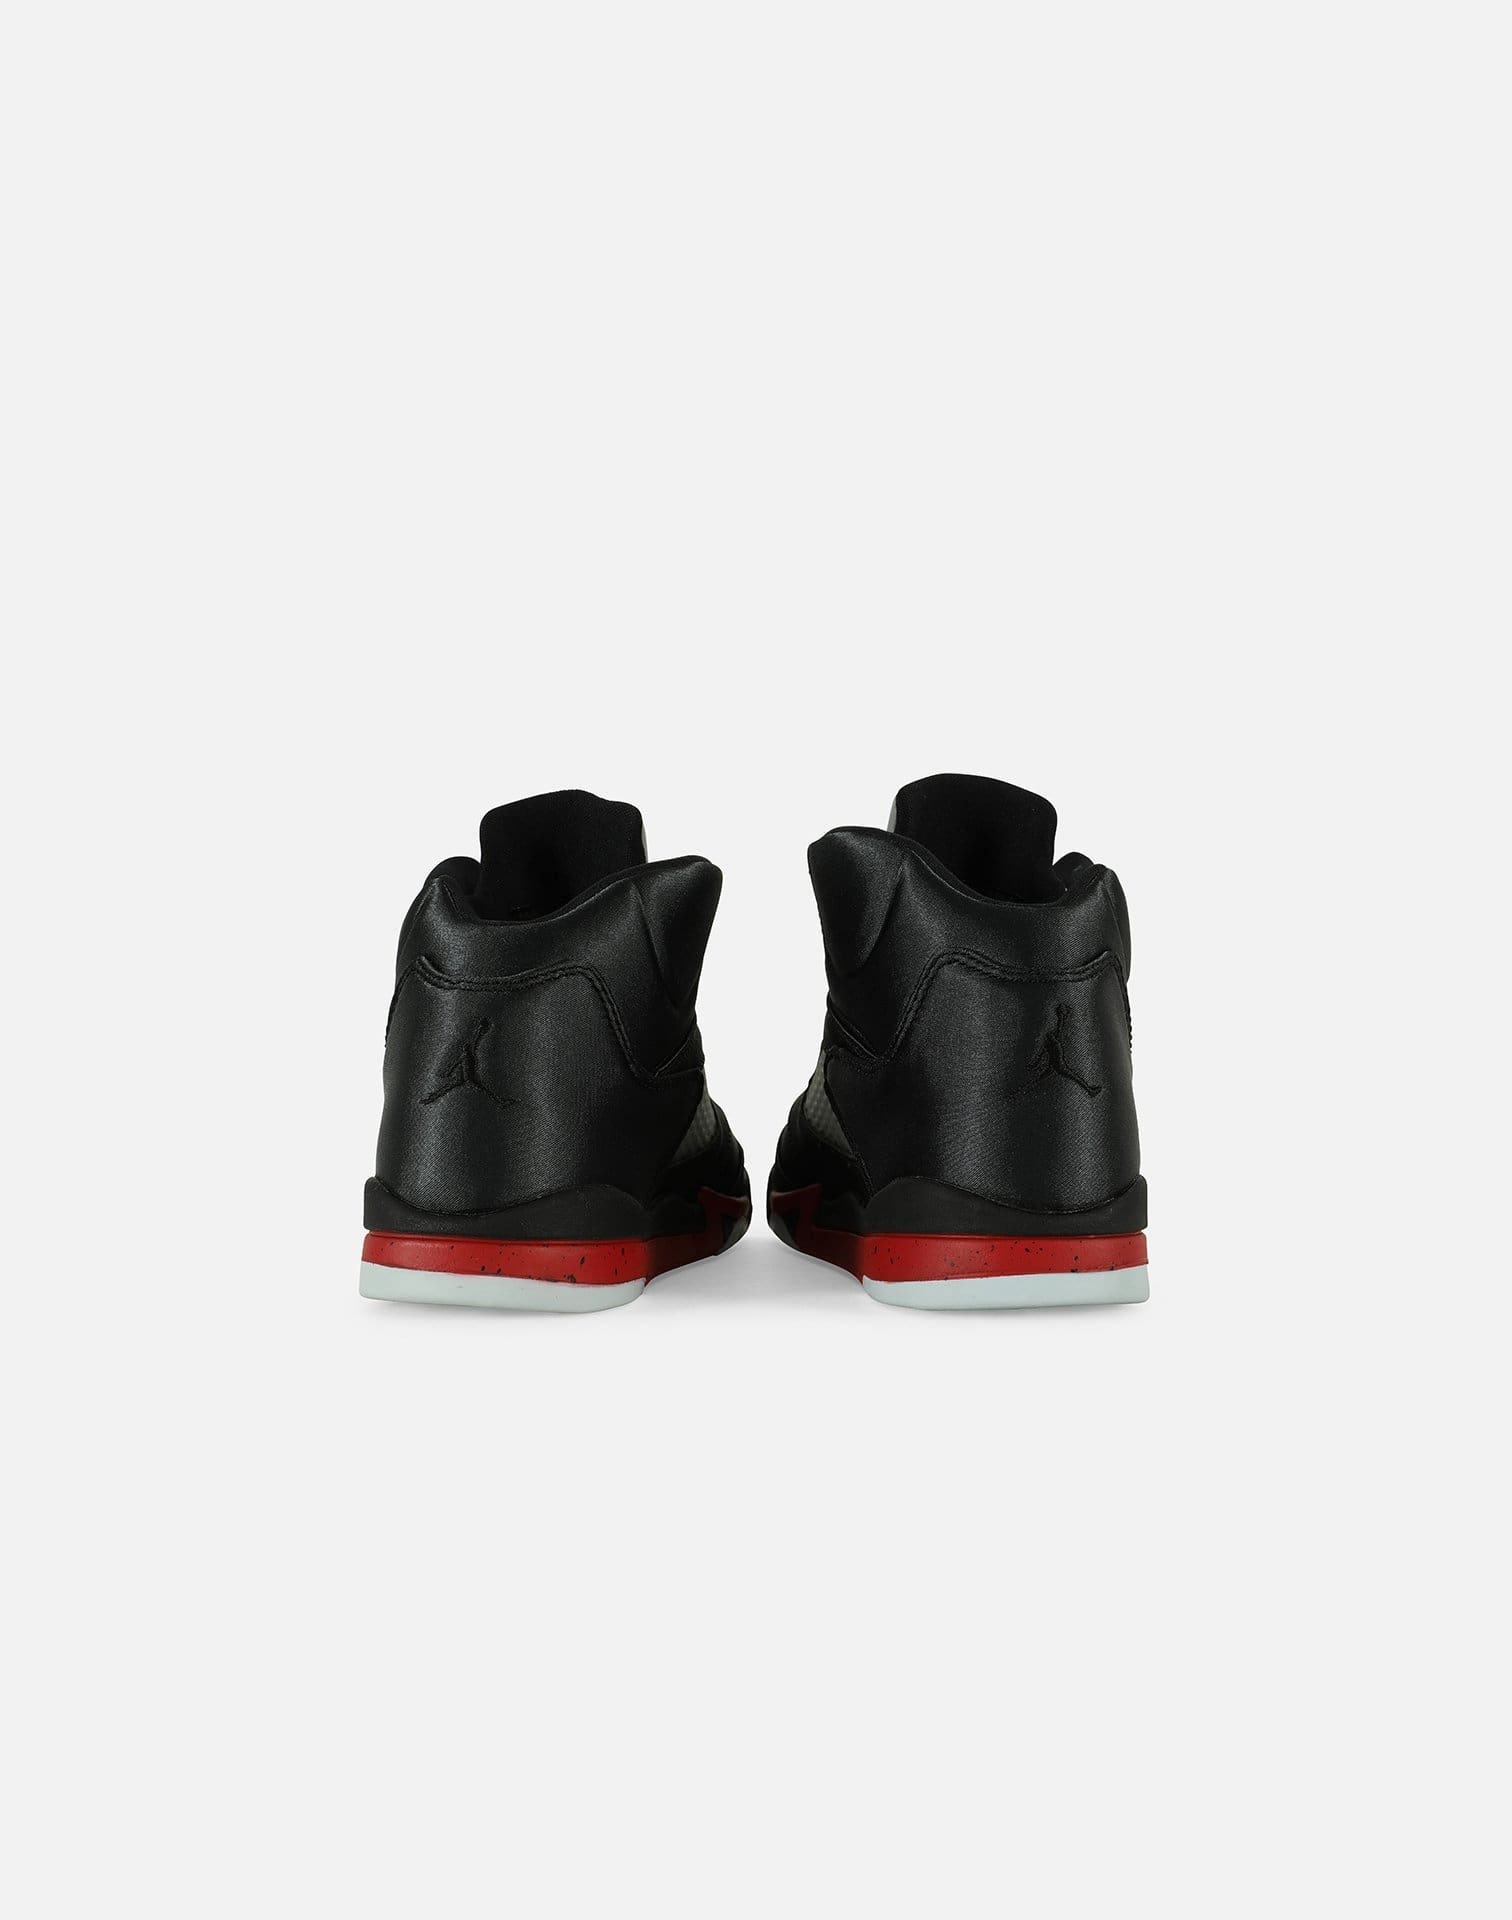 Jordan Air Jordan Retro 5 'Satin Bred' Pre-School